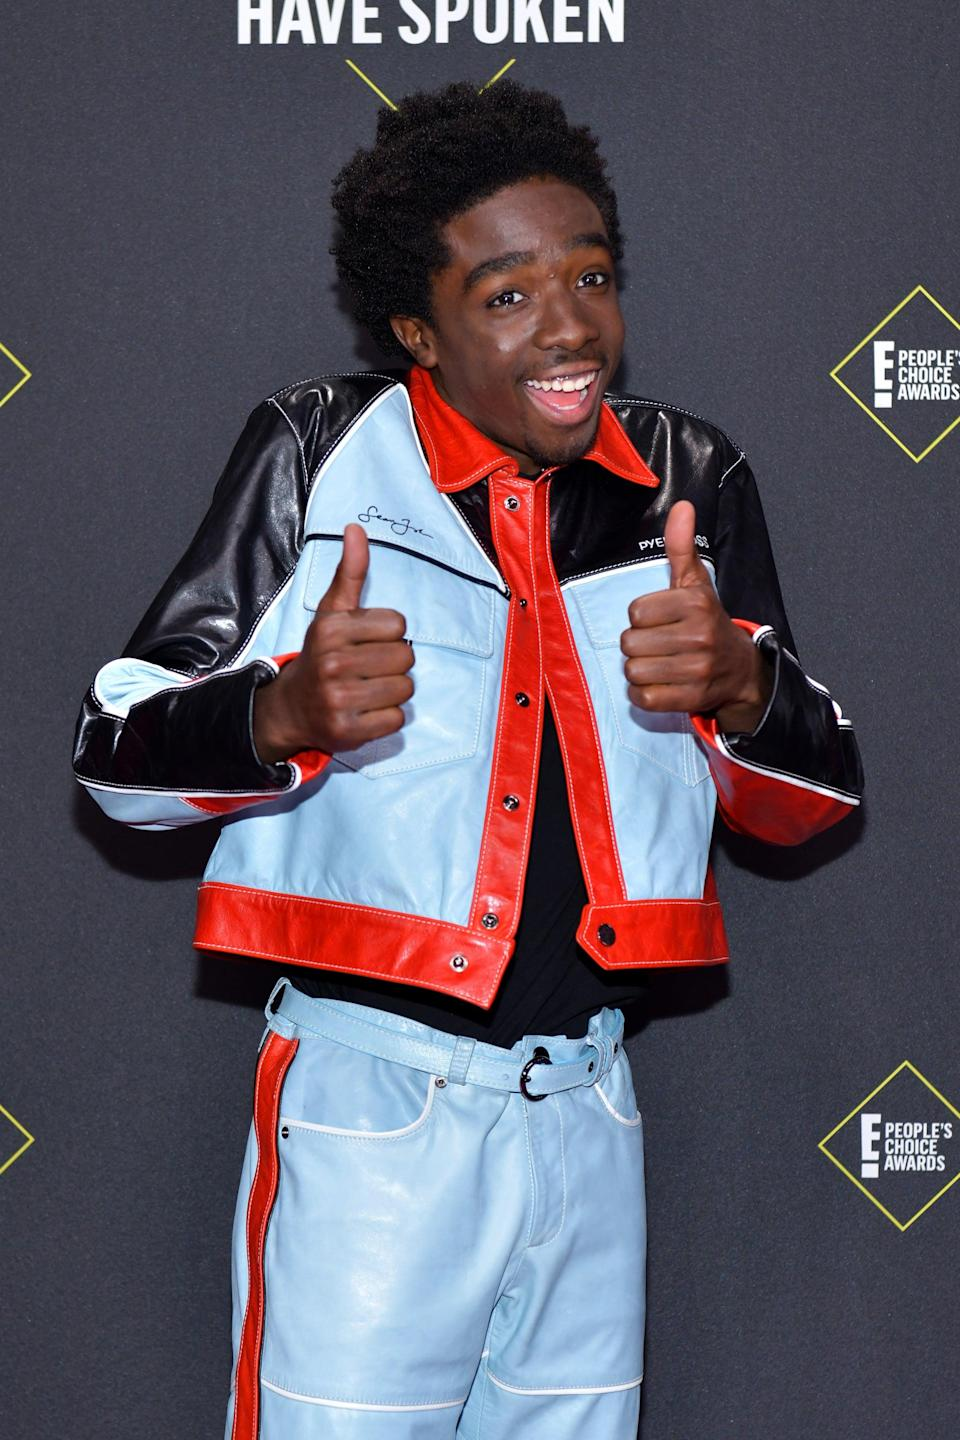 """<p>Not only is <a href=""""https://neuneumedia.com/caleb-mclaughlin-stranger-things-interview/"""" class=""""link rapid-noclick-resp"""" rel=""""nofollow noopener"""" target=""""_blank"""" data-ylk=""""slk:R&amp;B one of his favorite genres"""">R&amp;B one of his favorite genres</a> of music, he portrayed Ricky Bell on BET's <strong>The New Edition Story</strong>. Some of his favorite artists include New Edition, Mint Condition, Jodeci, Joe and Chi. He even has plans to make old-school R&amp;B of his own some day. """"<a href=""""https://www.coupdemainmagazine.com/caleb-mclaughlin/15800"""" class=""""link rapid-noclick-resp"""" rel=""""nofollow noopener"""" target=""""_blank"""" data-ylk=""""slk:I realized how much I love music"""">I realized how much I love music</a>, and I love the art of music - I want to do it,"""" he said in a prior interview with <strong>Coup De Main</strong>. </p>"""